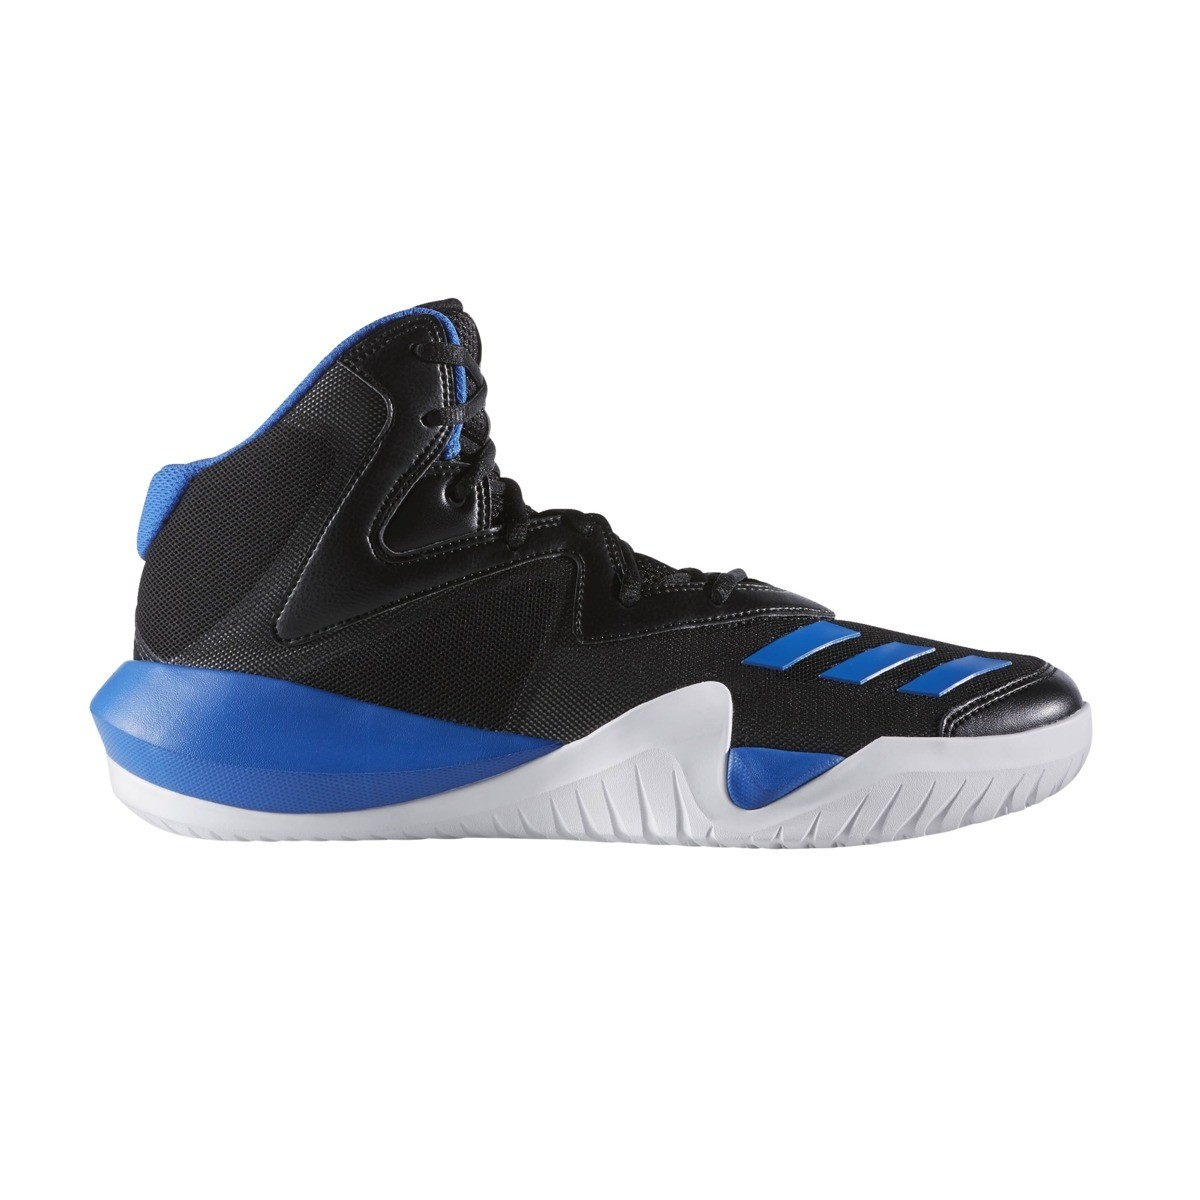 release date 444f2 a1511 Buty Adidas Crazy Team 2017 - BB8253